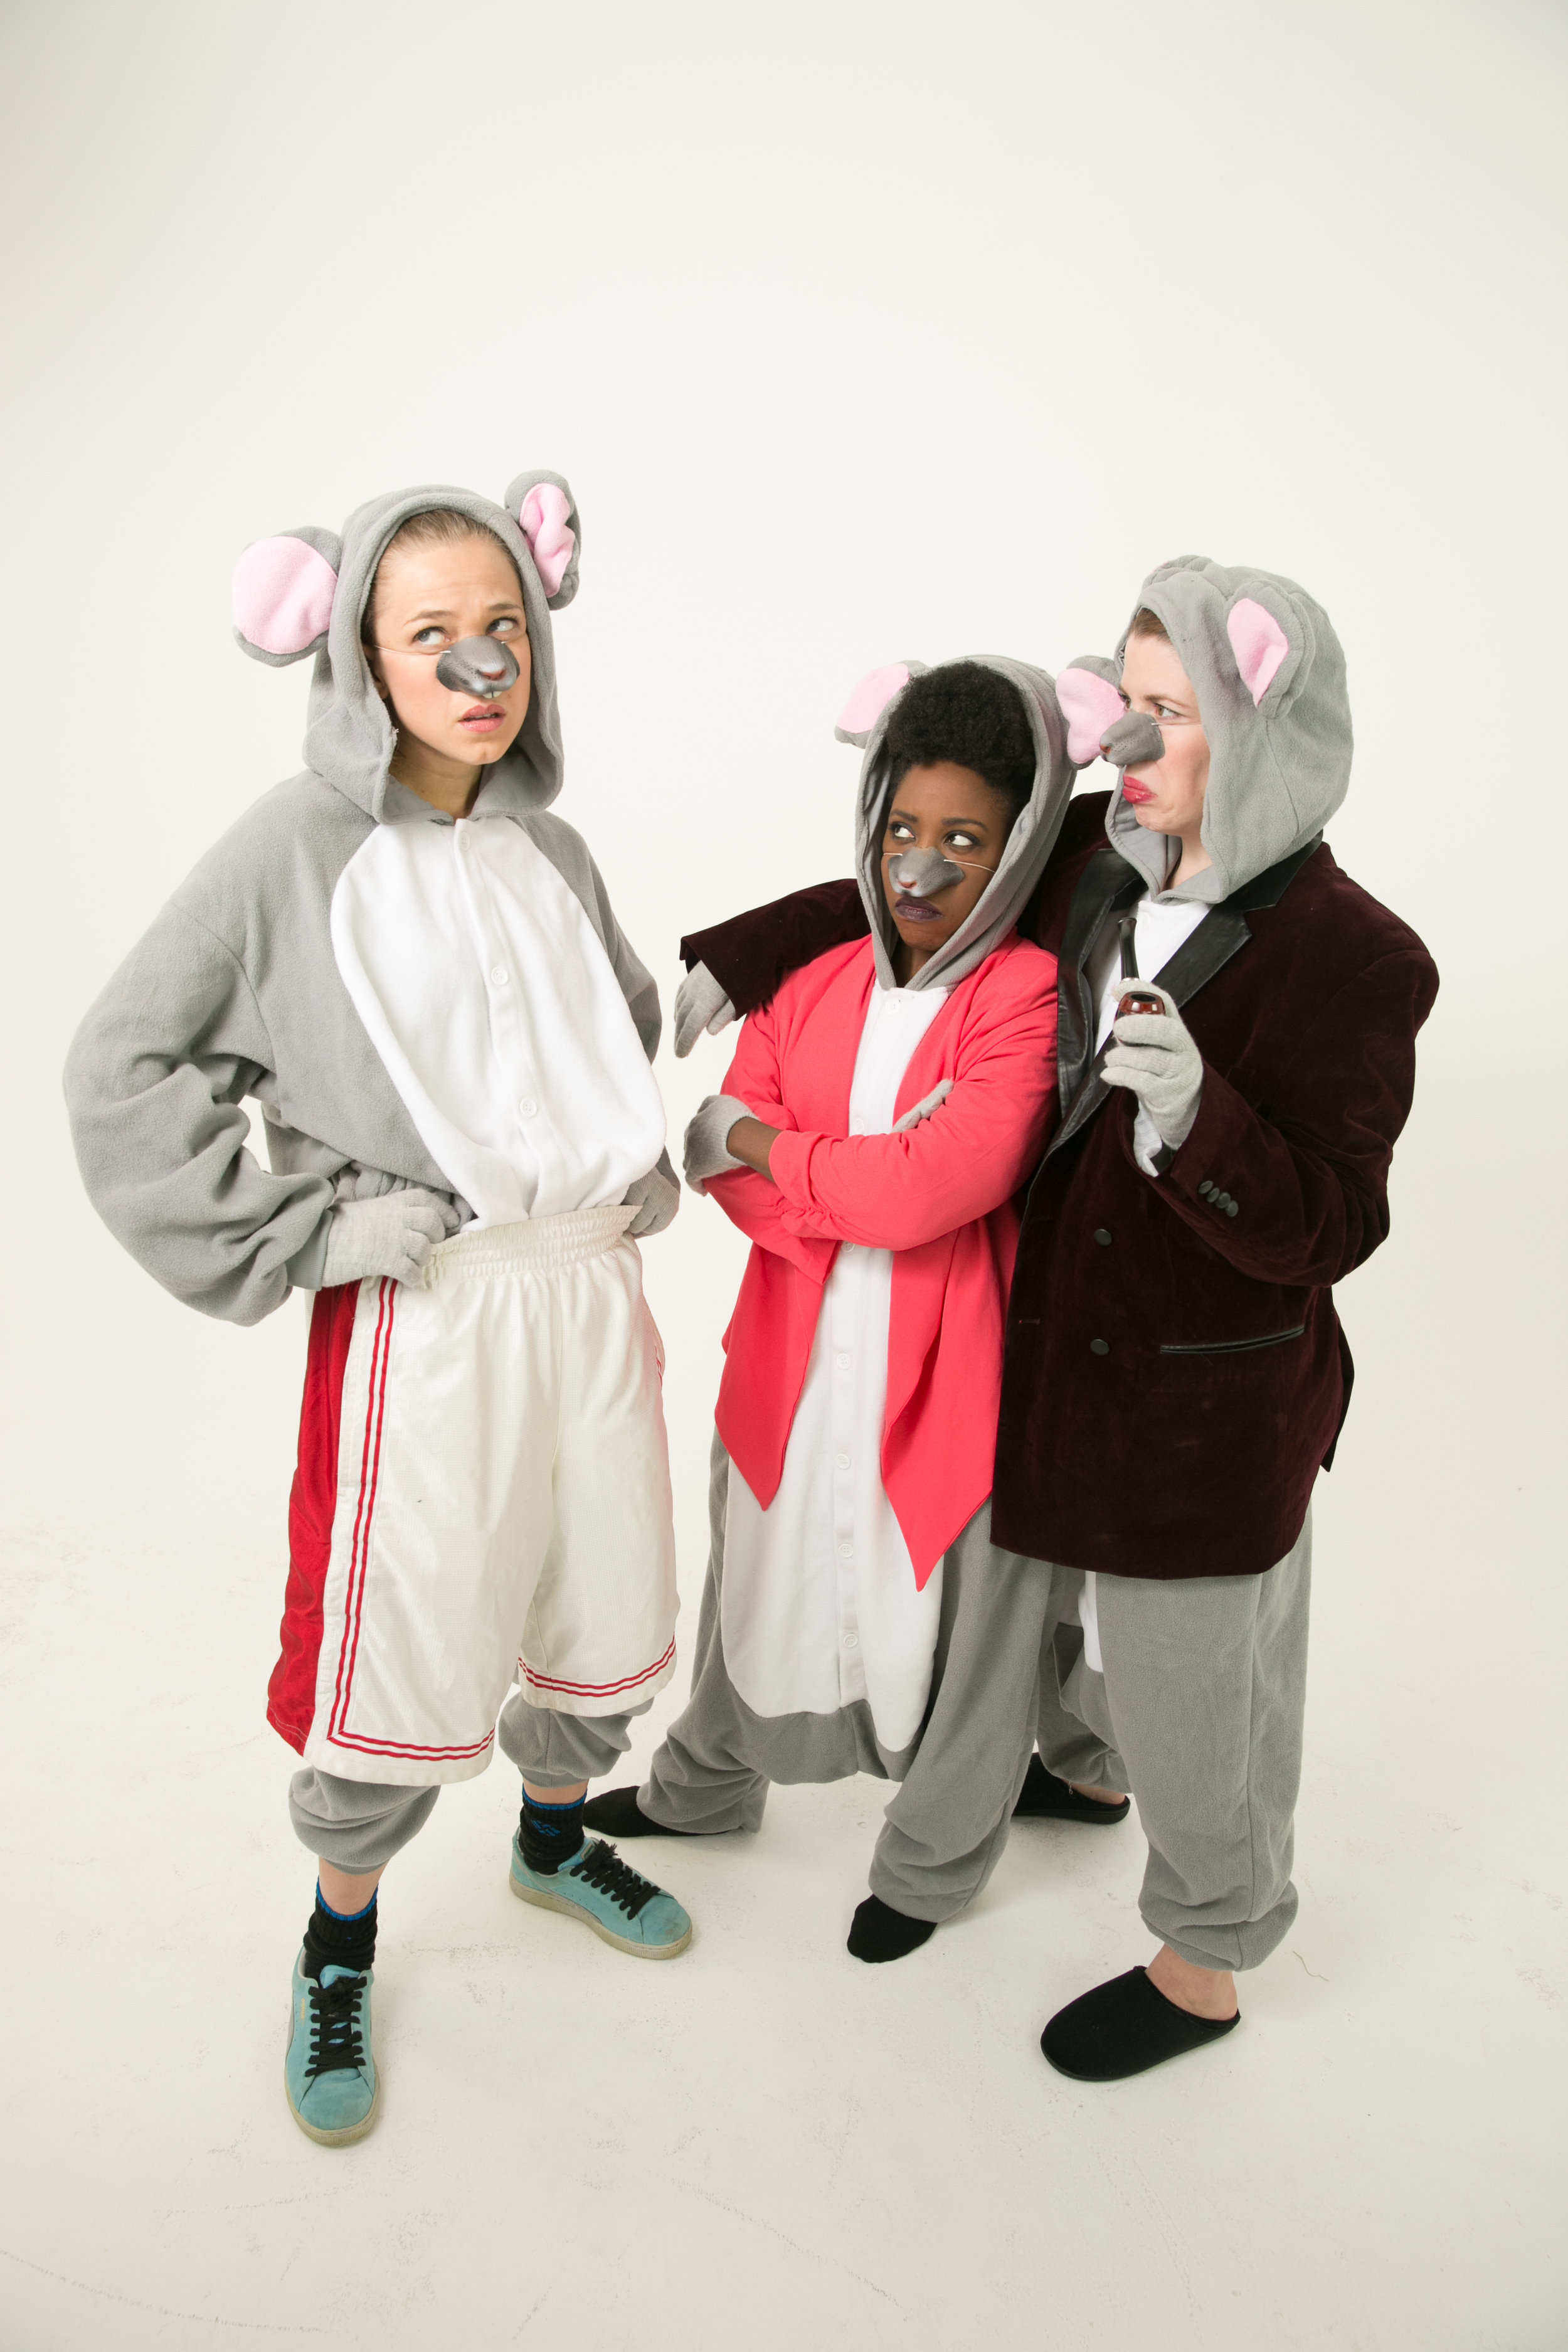 Lab Rats sketch by Broad Comedy